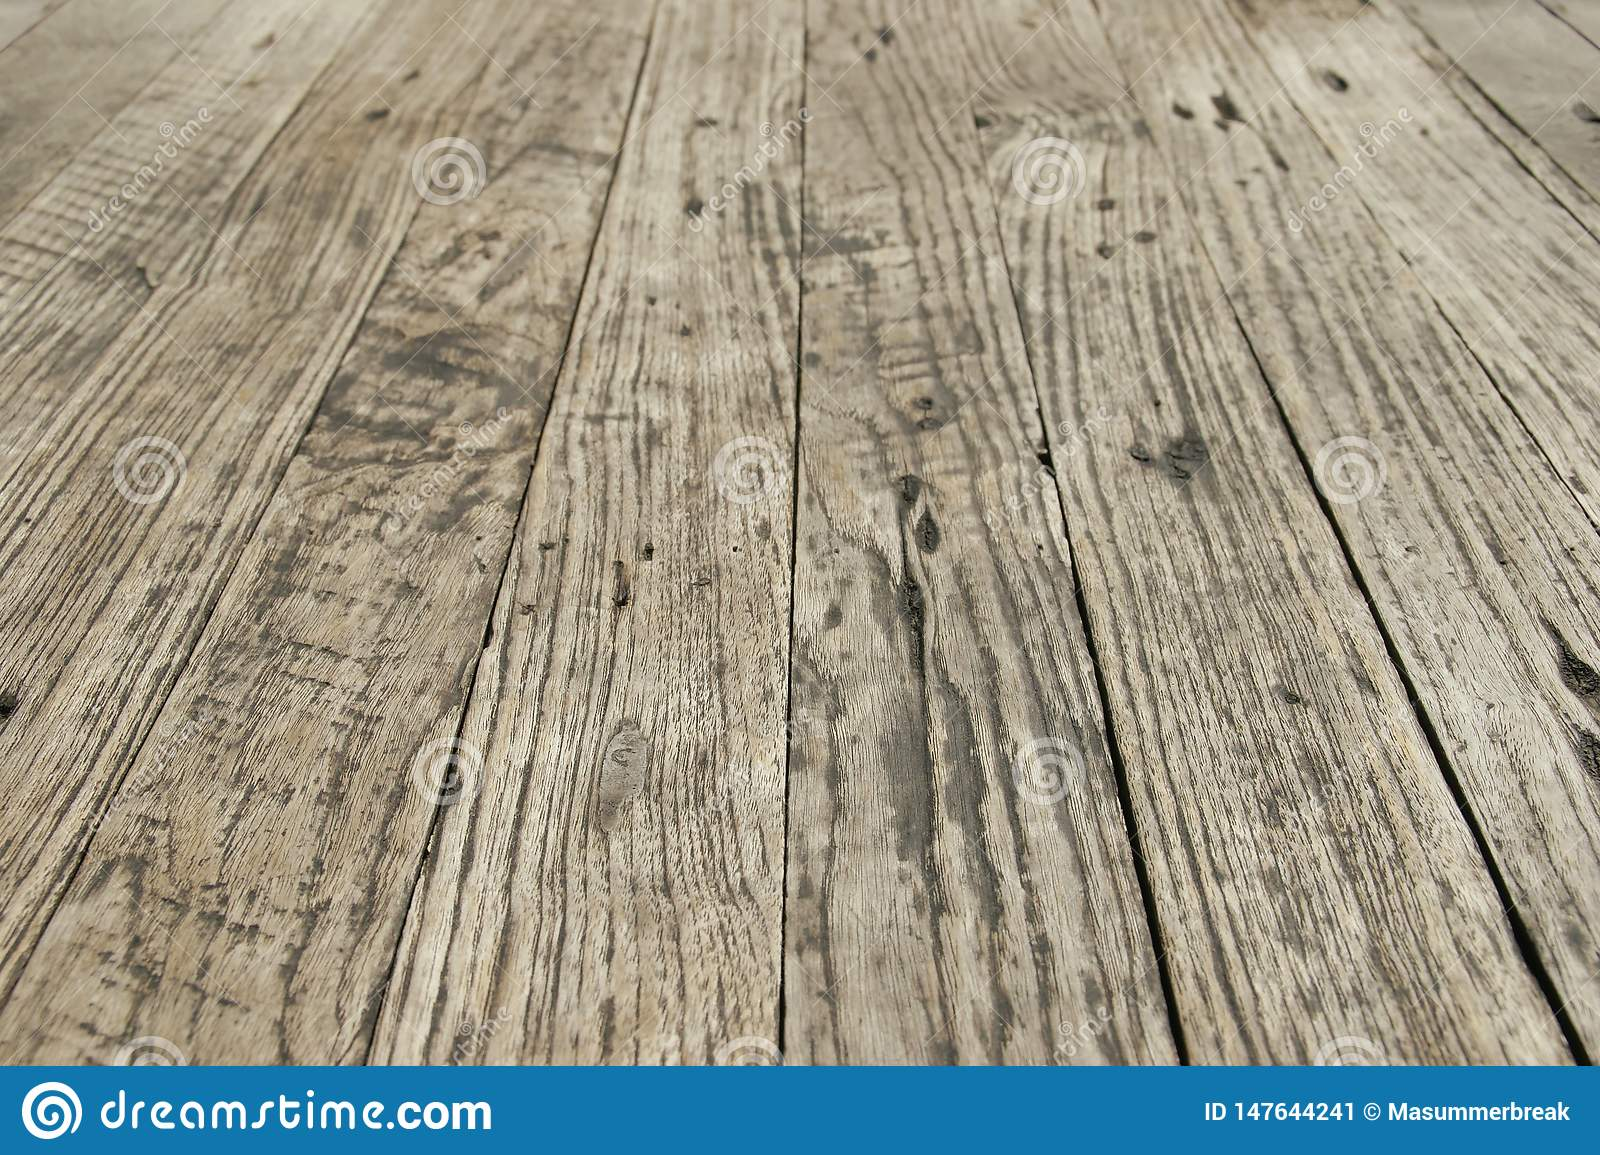 Perspective View of Old Wood Floor as Background